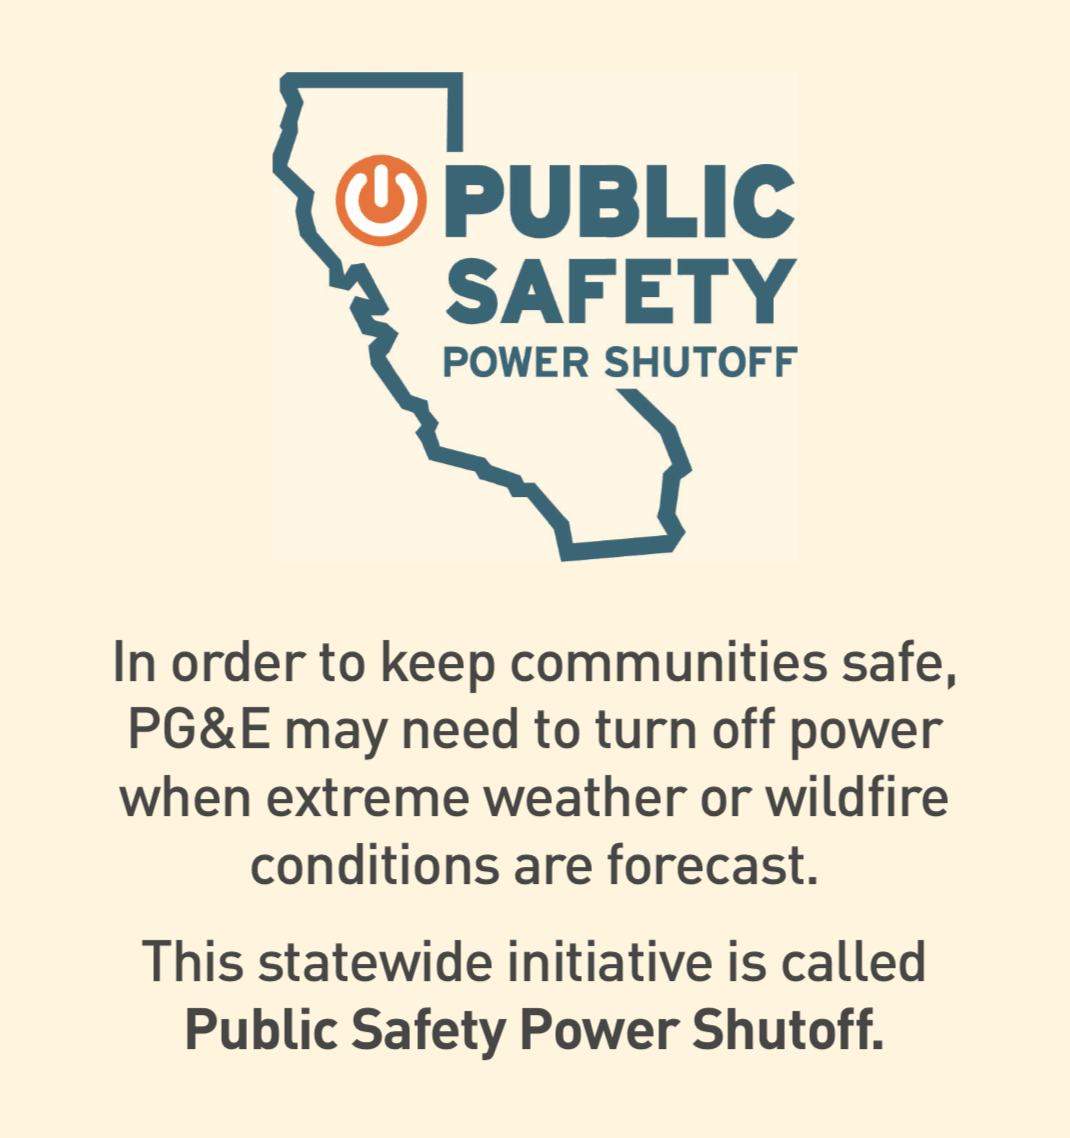 Illustration of California with a power button for the Public Safety Power Shuttoff initiative.